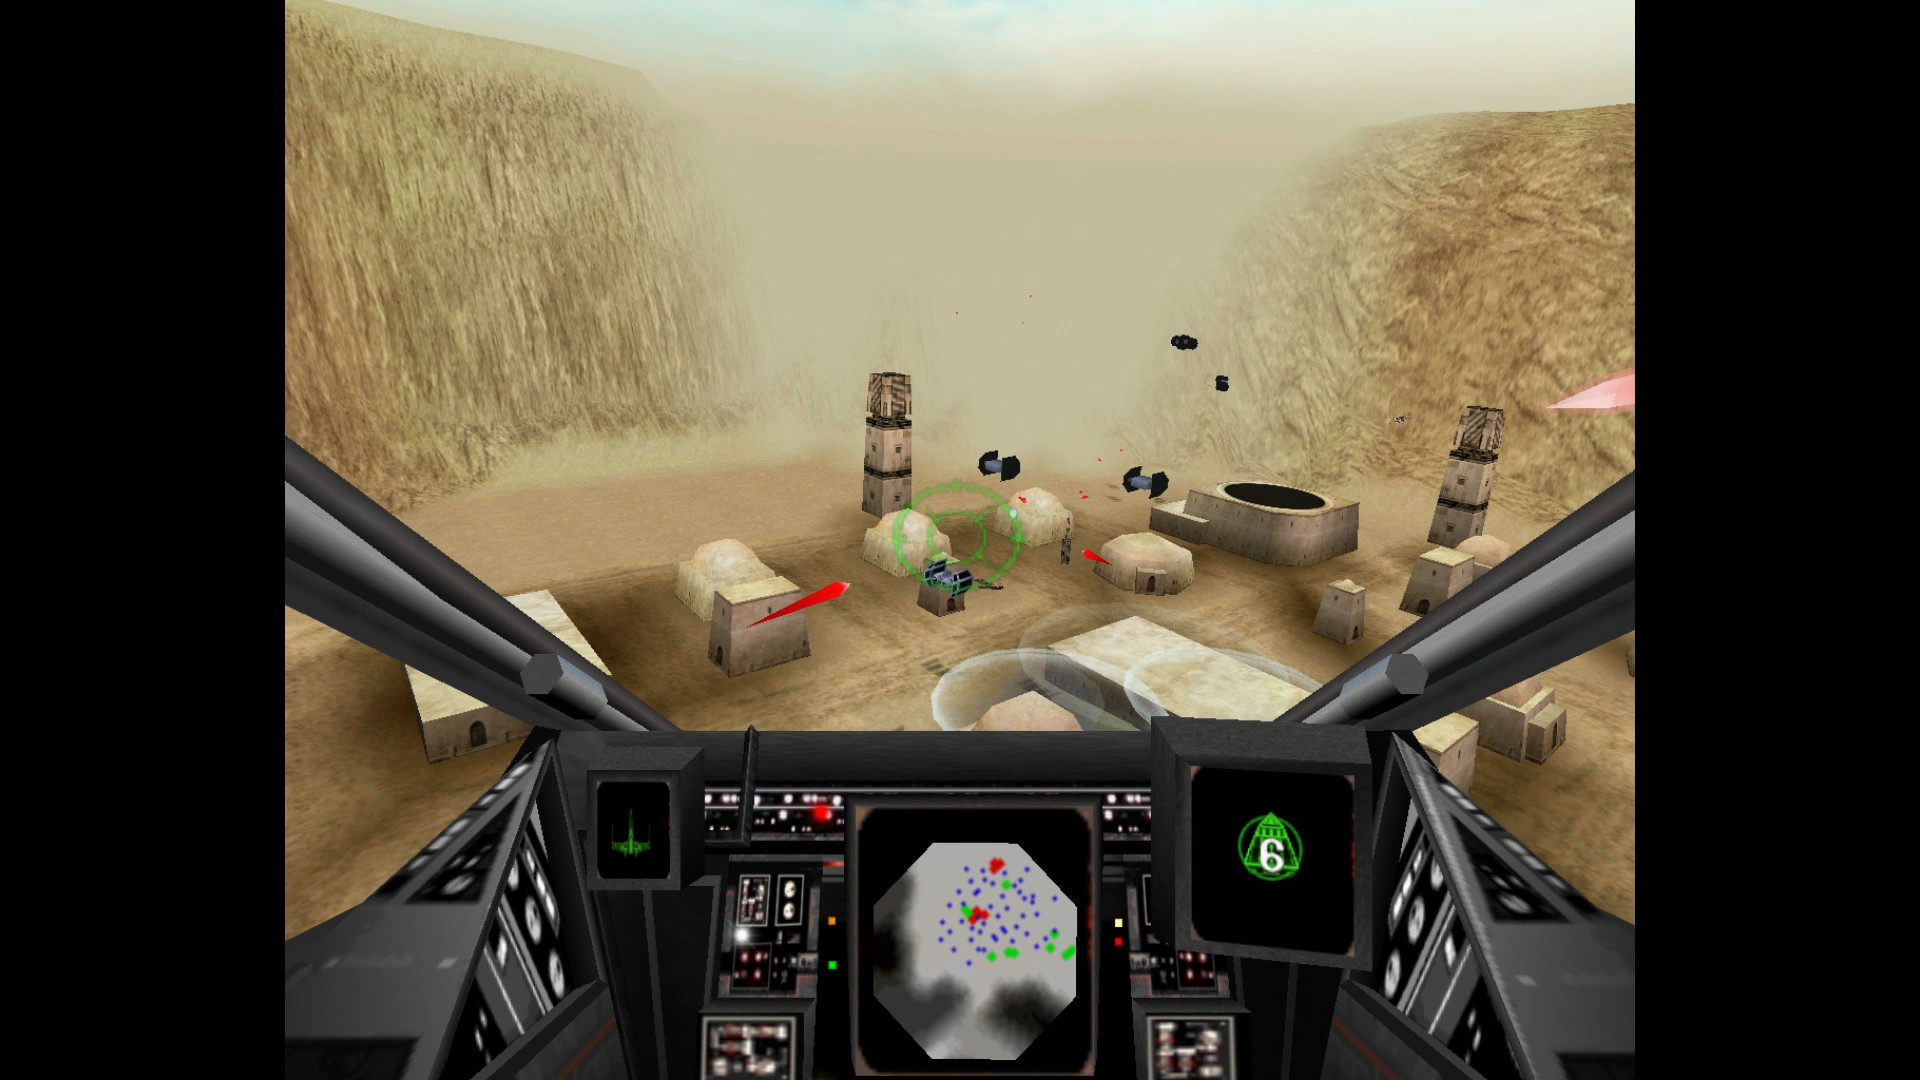 Download Star Wars Rogue Squadron 3d Full Pc Game